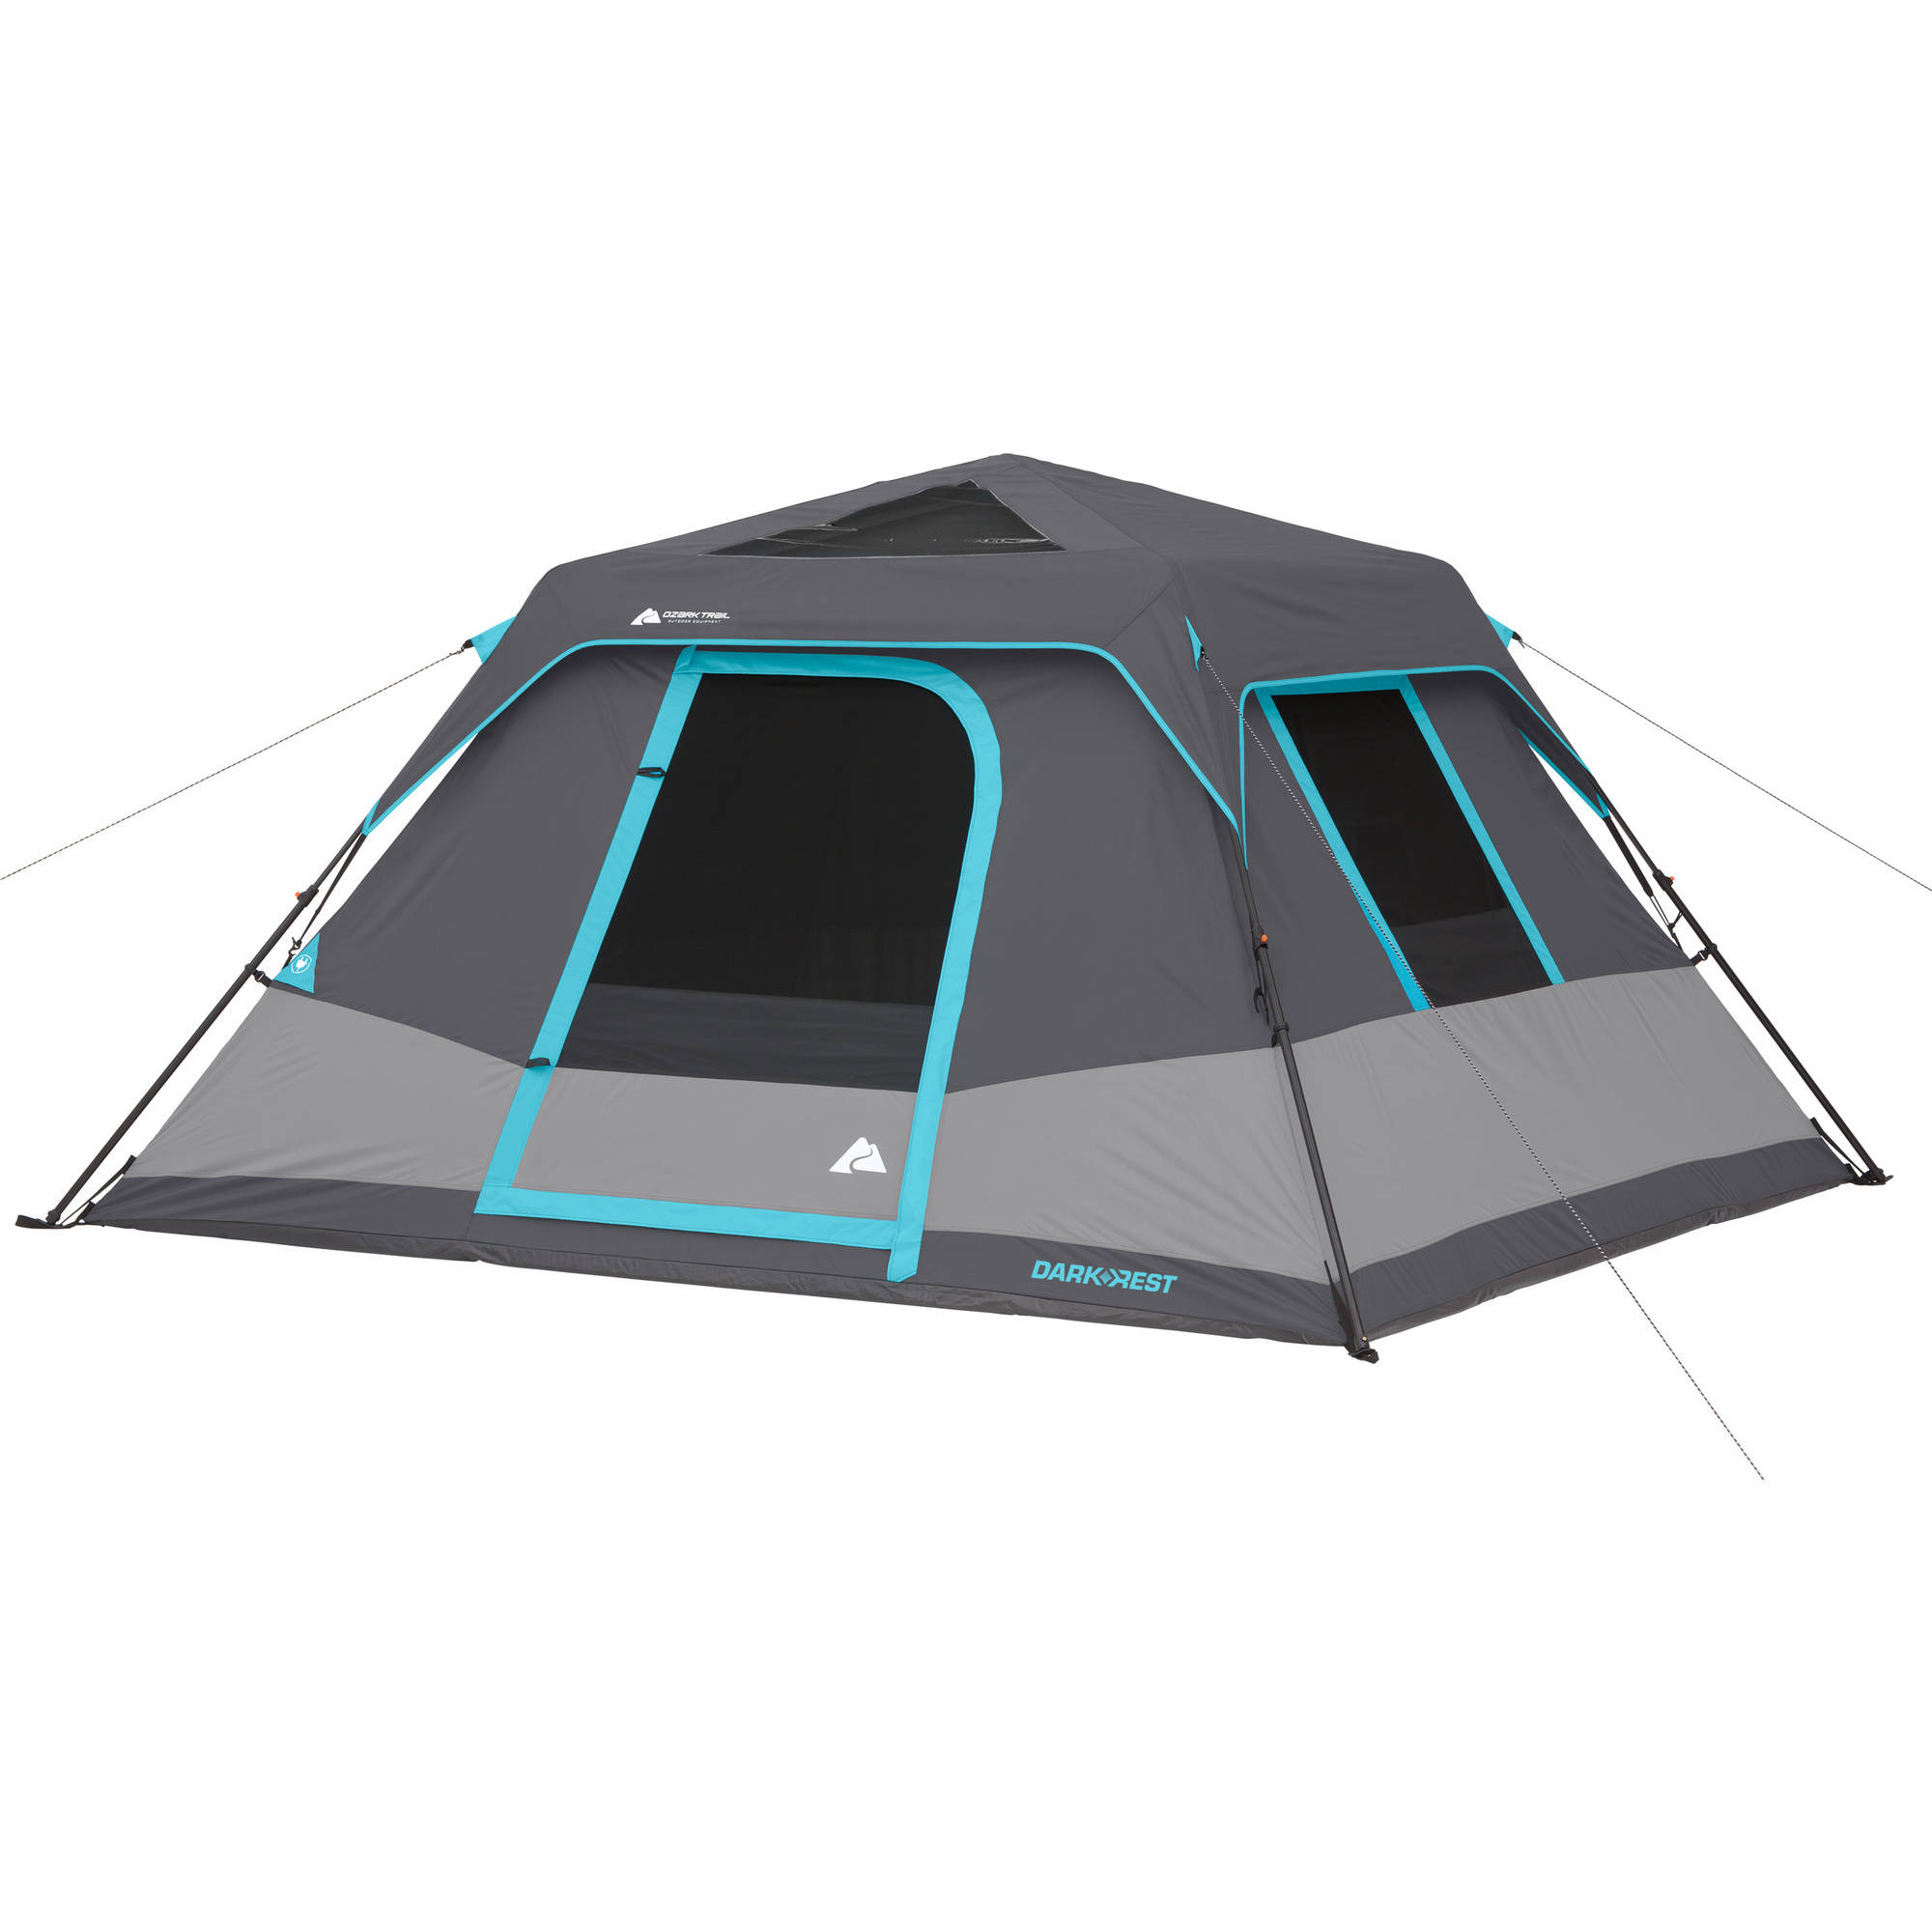 Ozark Trail 6-Person Dark Rest Instant Cabin Tent by Bohemian Travel Gear Limited